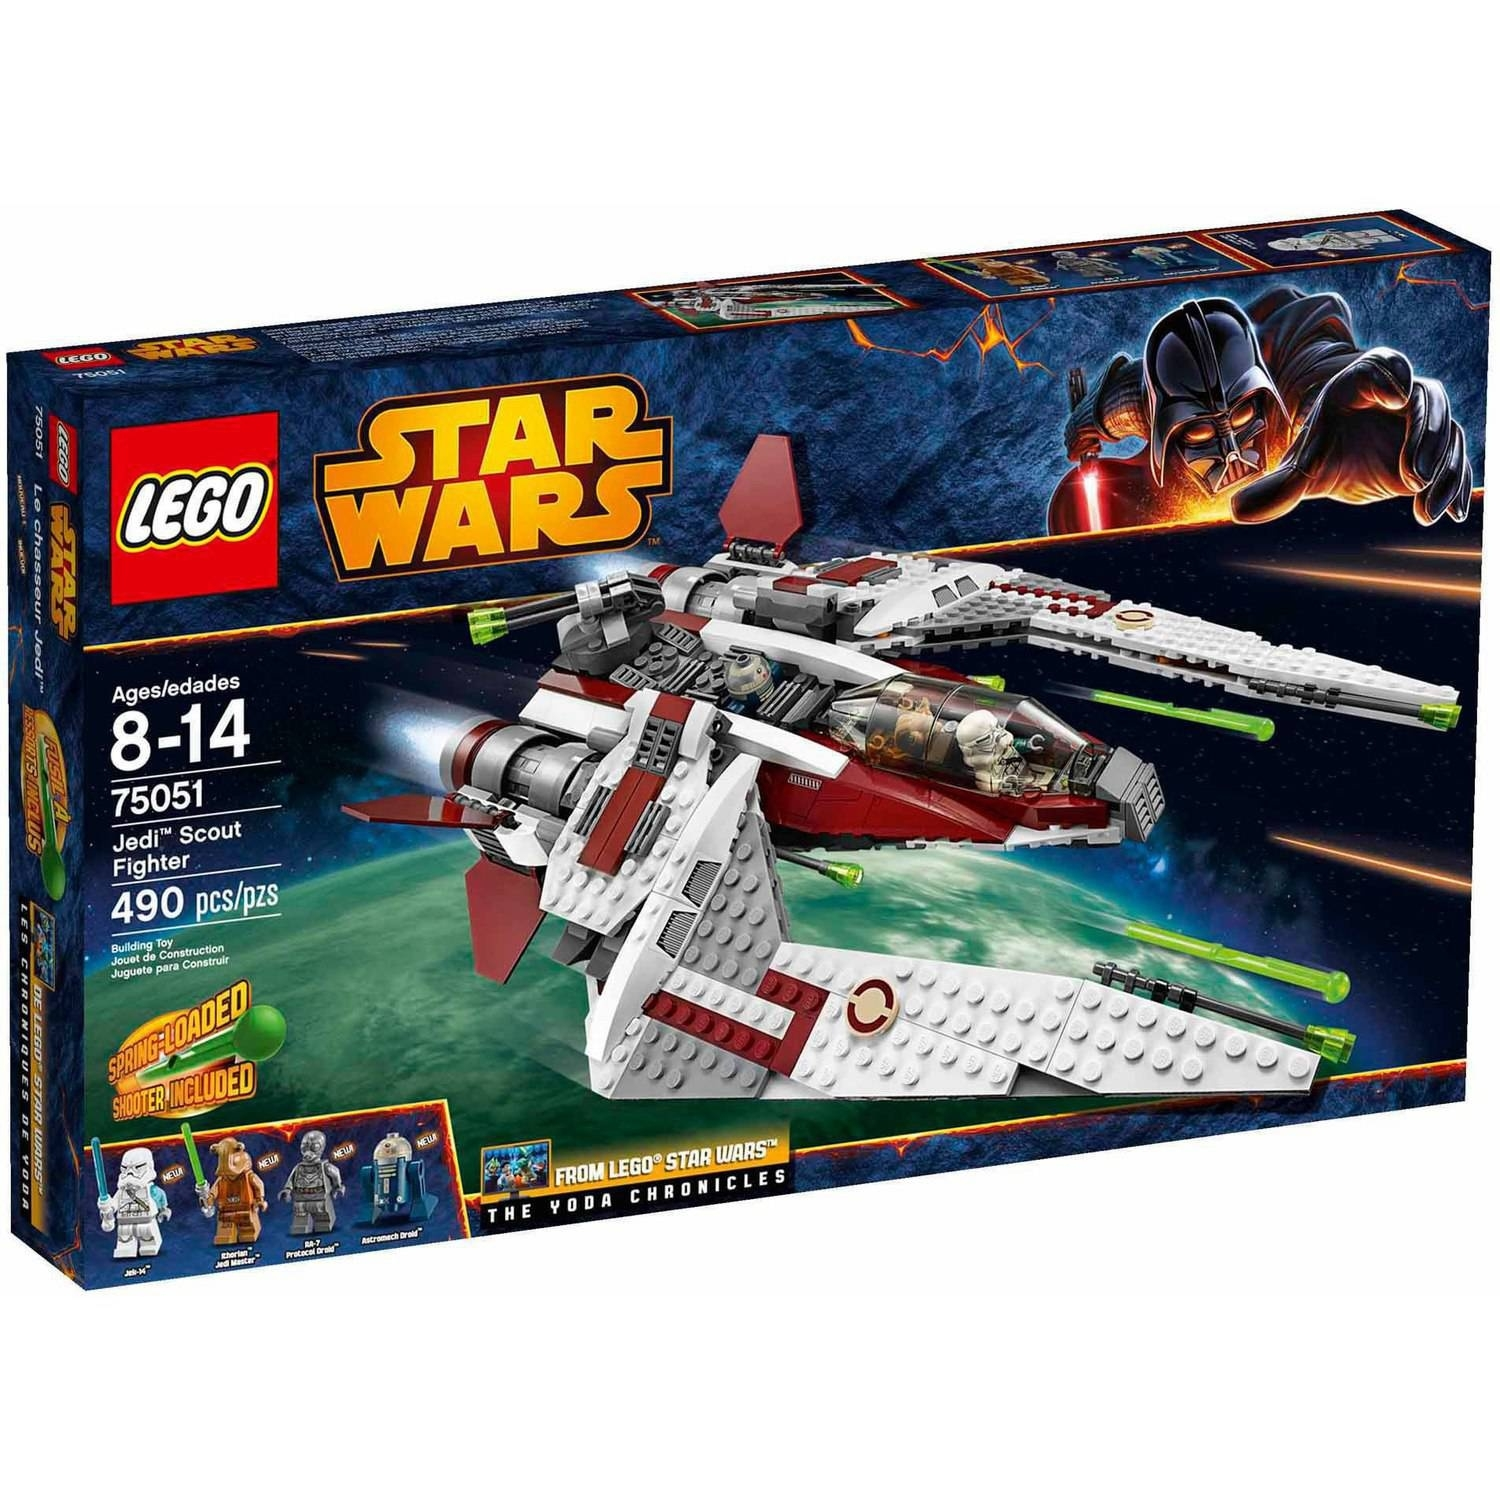 Lego Star Wars Jedi Scout Fighter - Walmart  Star Wars Lego Sets Code